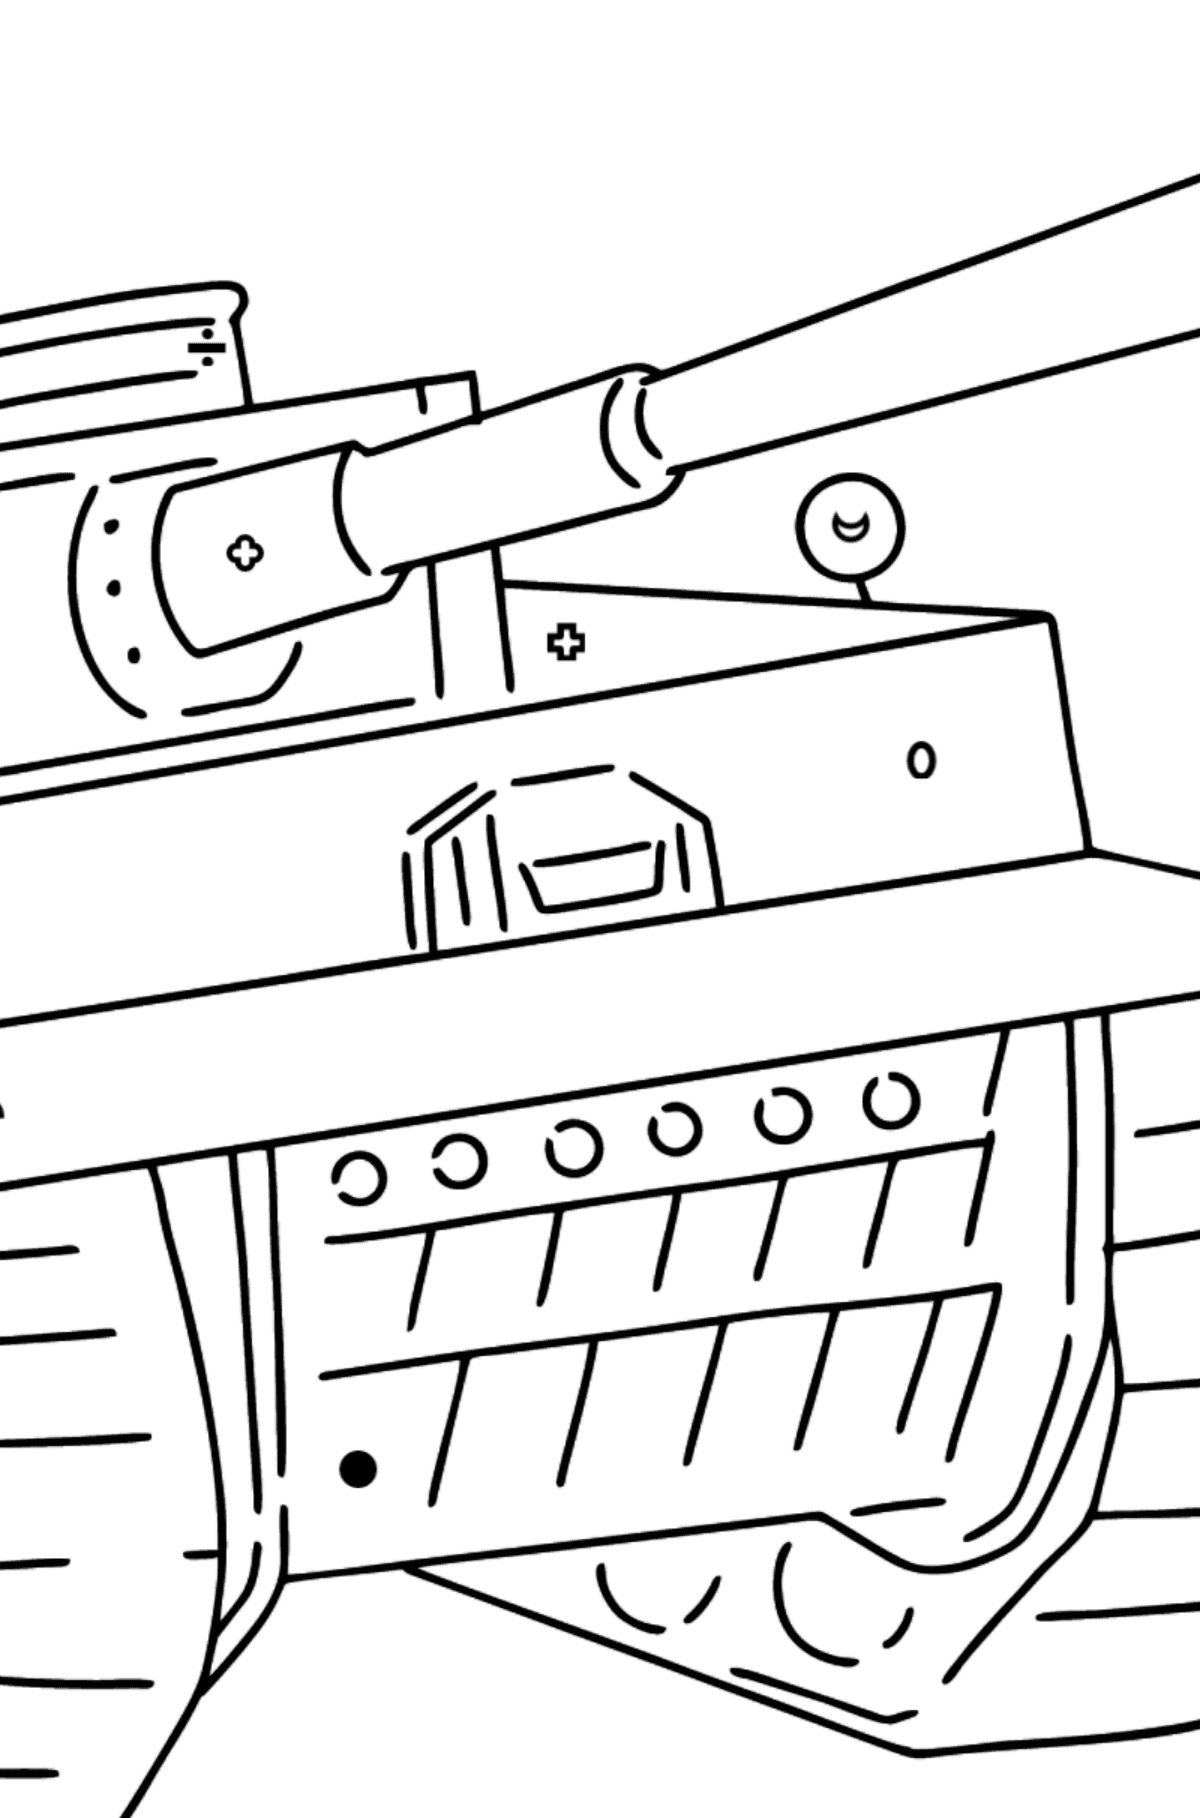 Tank Panther coloring page - Coloring by Symbols and Geometric Shapes for Kids